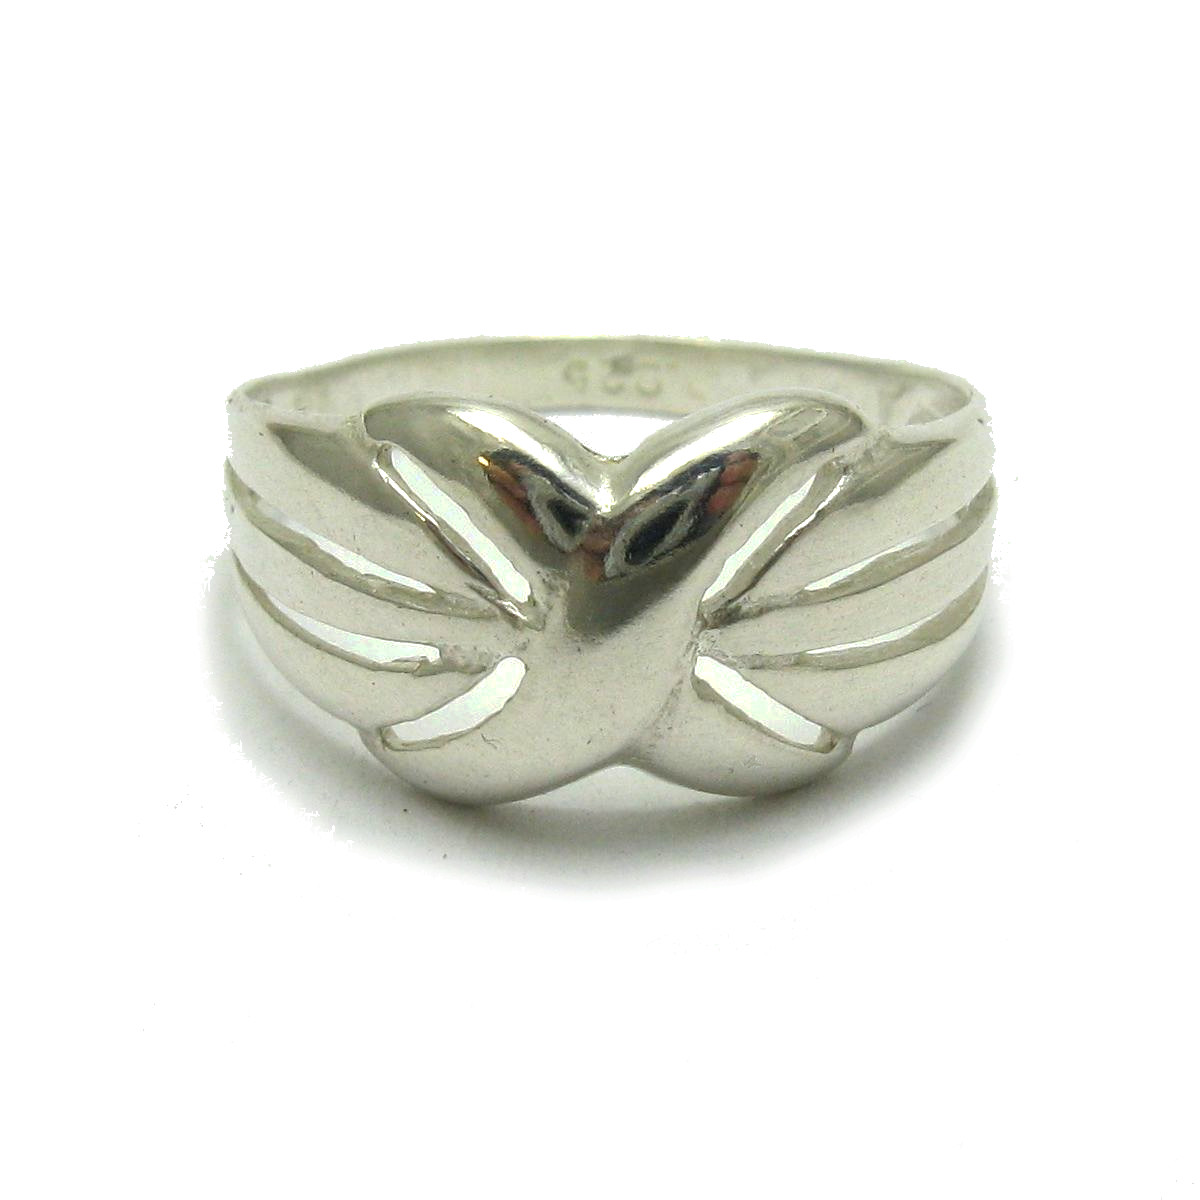 Silver ring - R001723